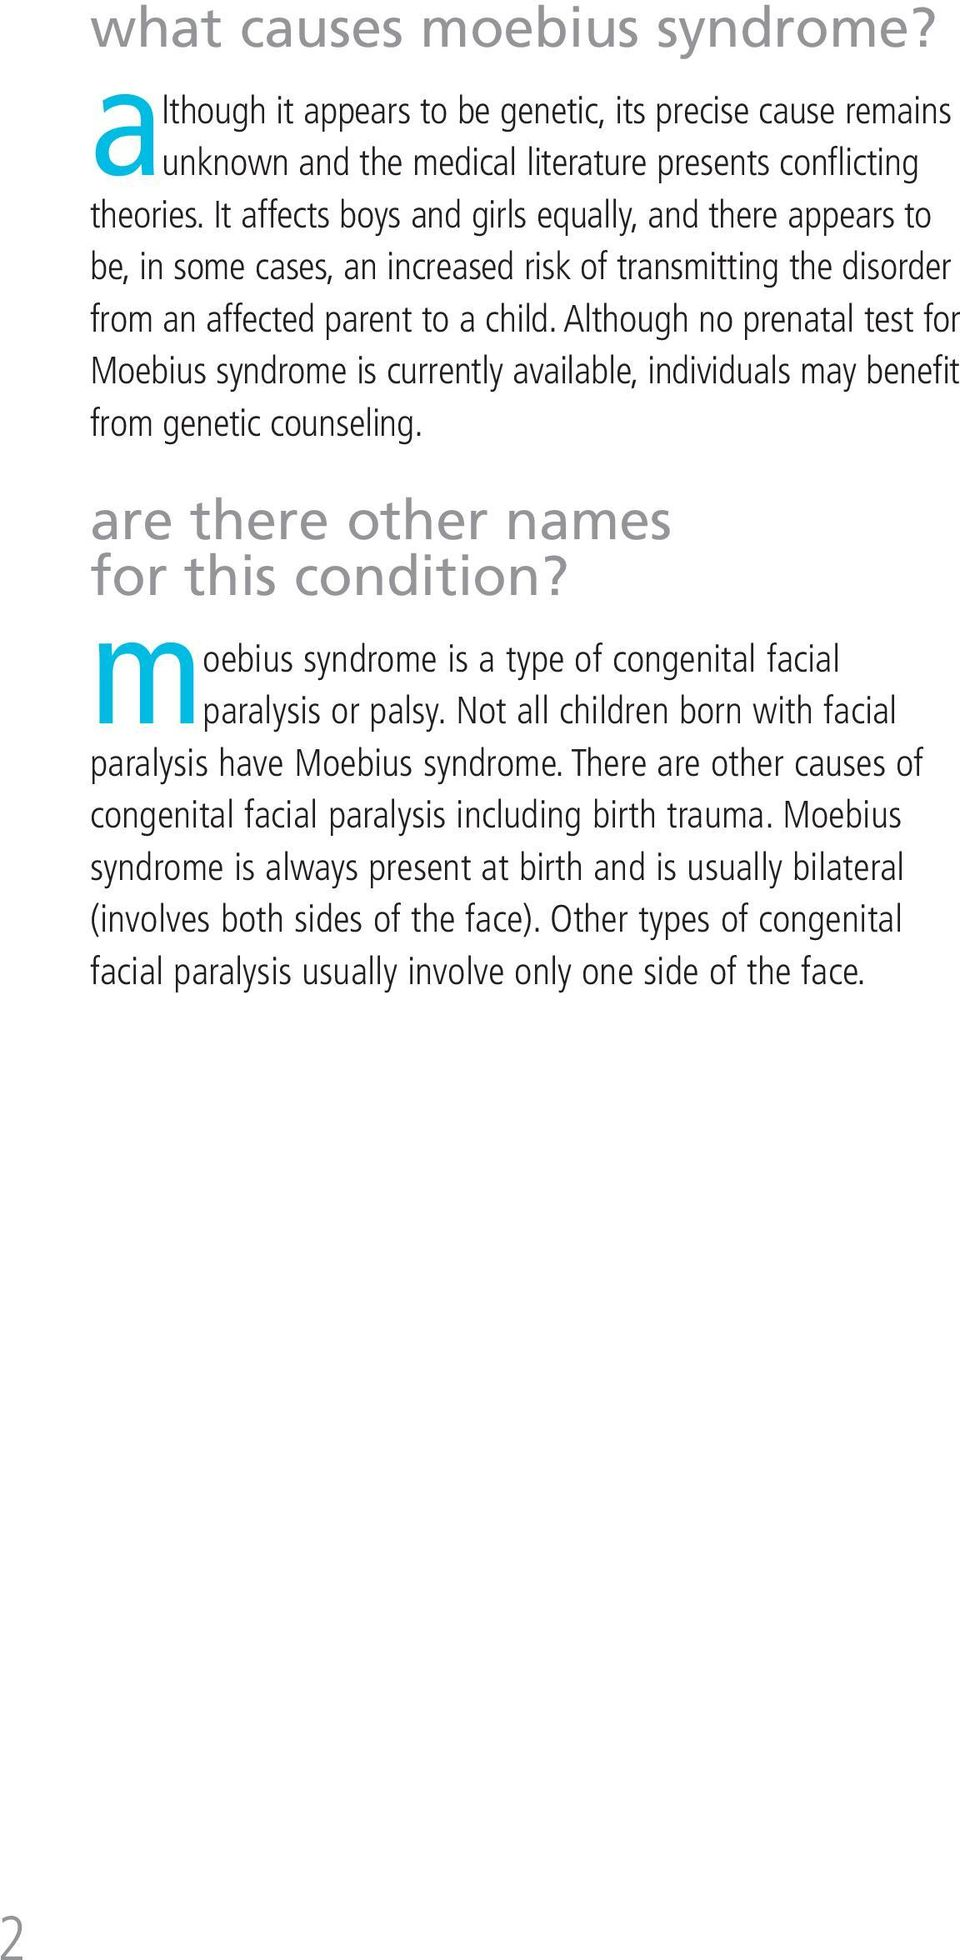 Although no prenatal test for Moebius syndrome is currently available, individuals may benefit from genetic counseling. are there other names for this condition?